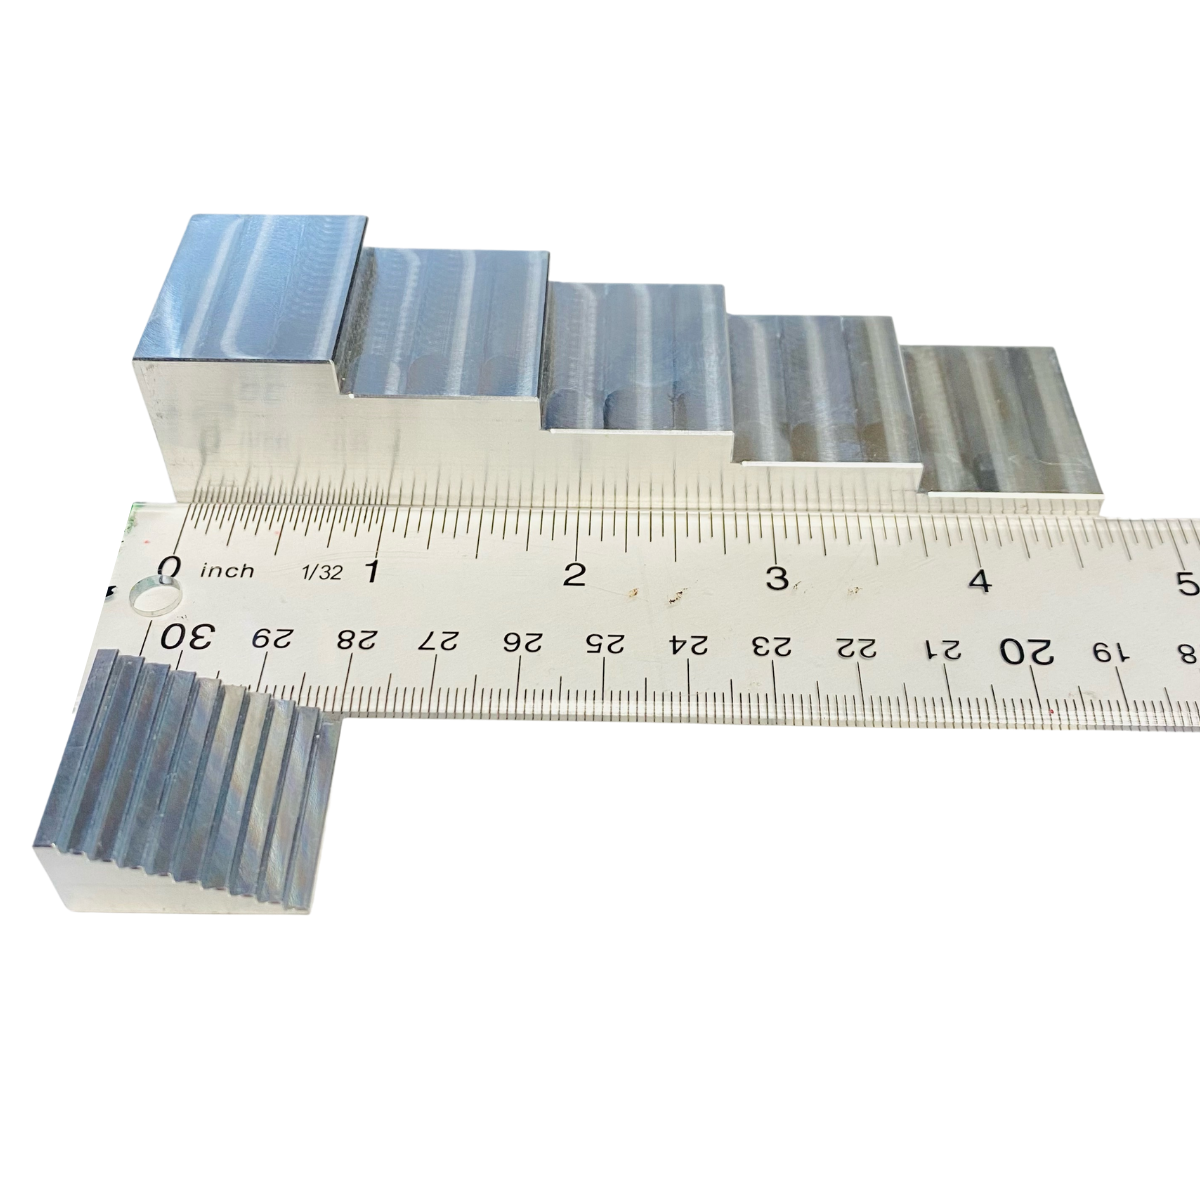 Aluminum Step Wedge Bundle (Small and Large) Quality Assurance Program